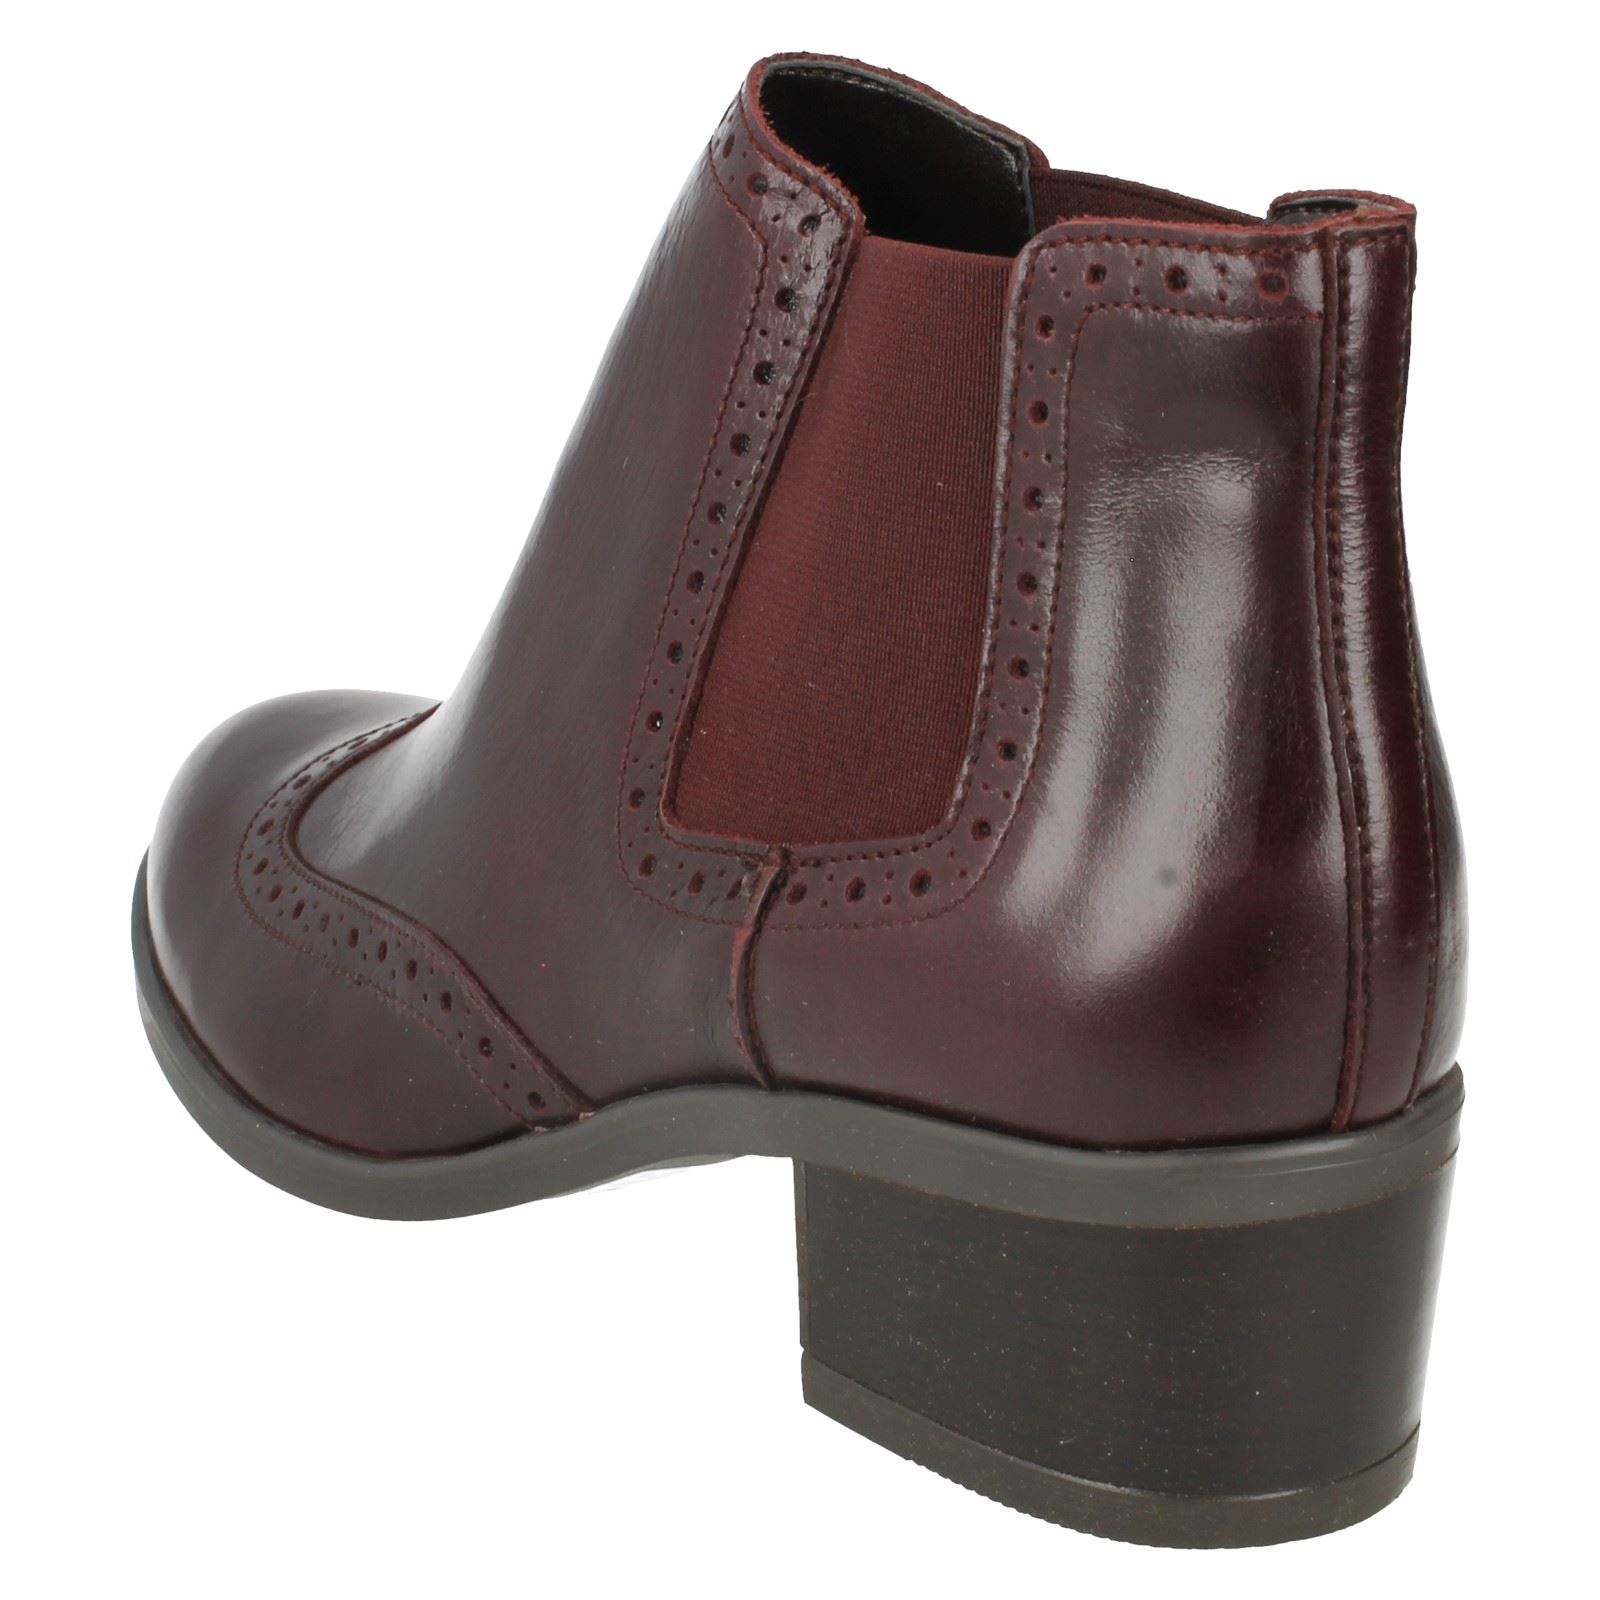 Ladies Clarks Casual Chelsea  Ankle Boots Style - Calne Cristie